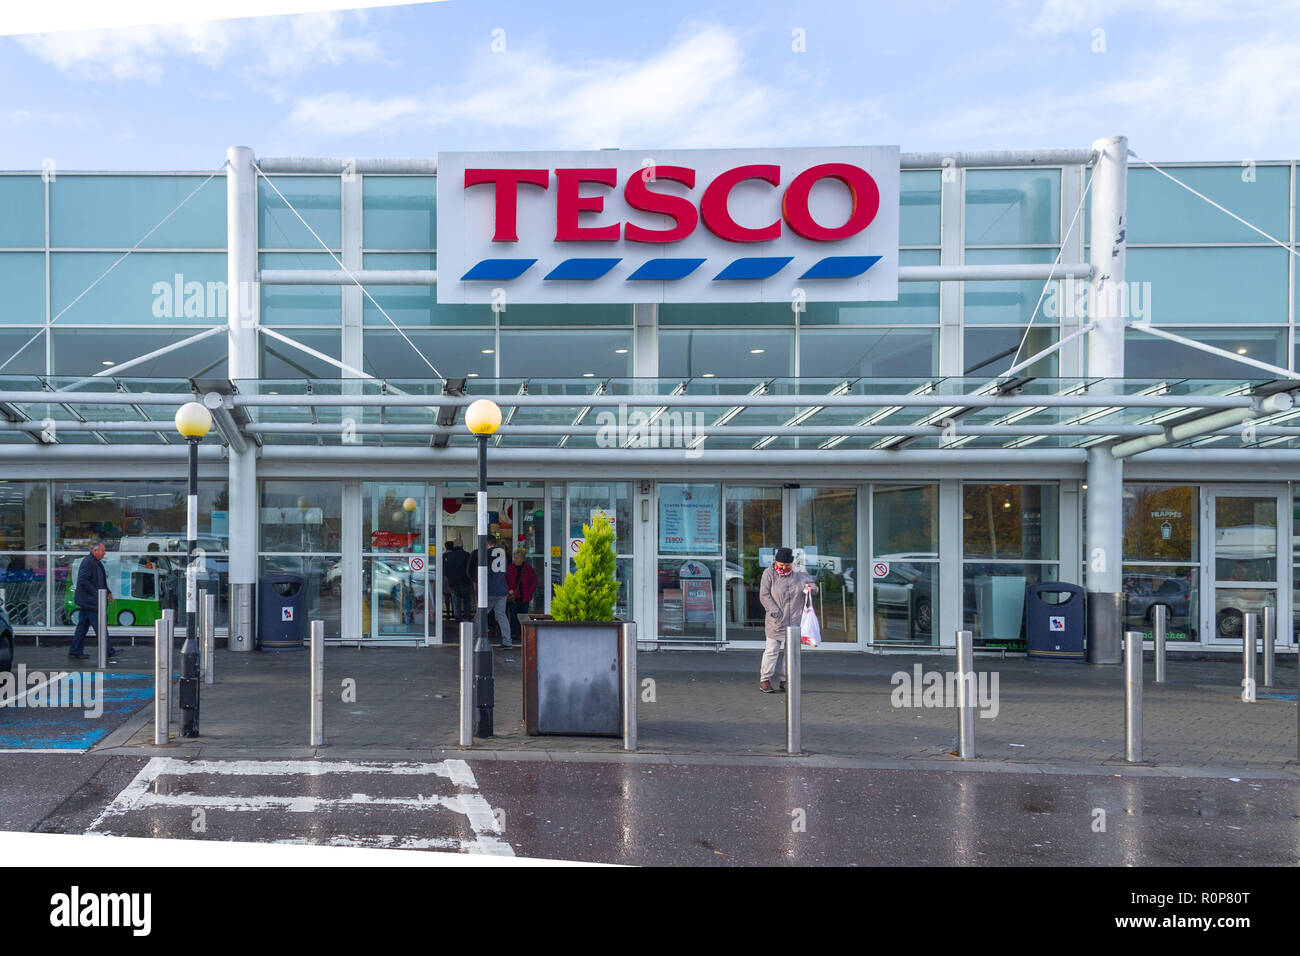 tesco-logo-on-the-entrance-to-the-tesco-supermarket-cork-ireland-R0P80T.jpg